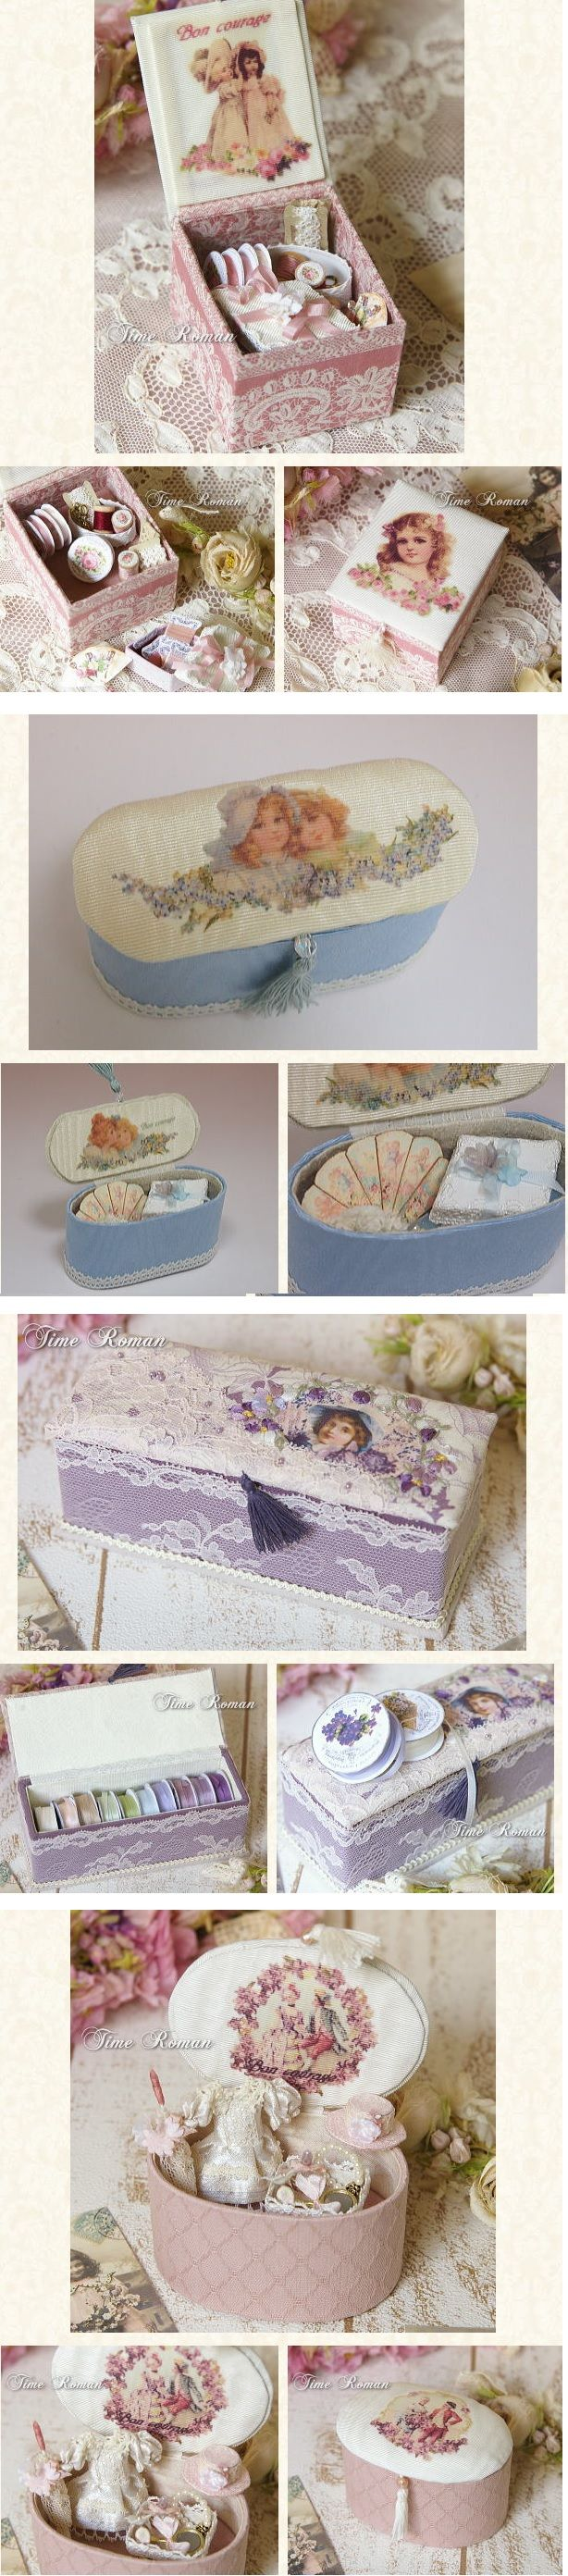 Love these for handmade sewing box ideas! :)